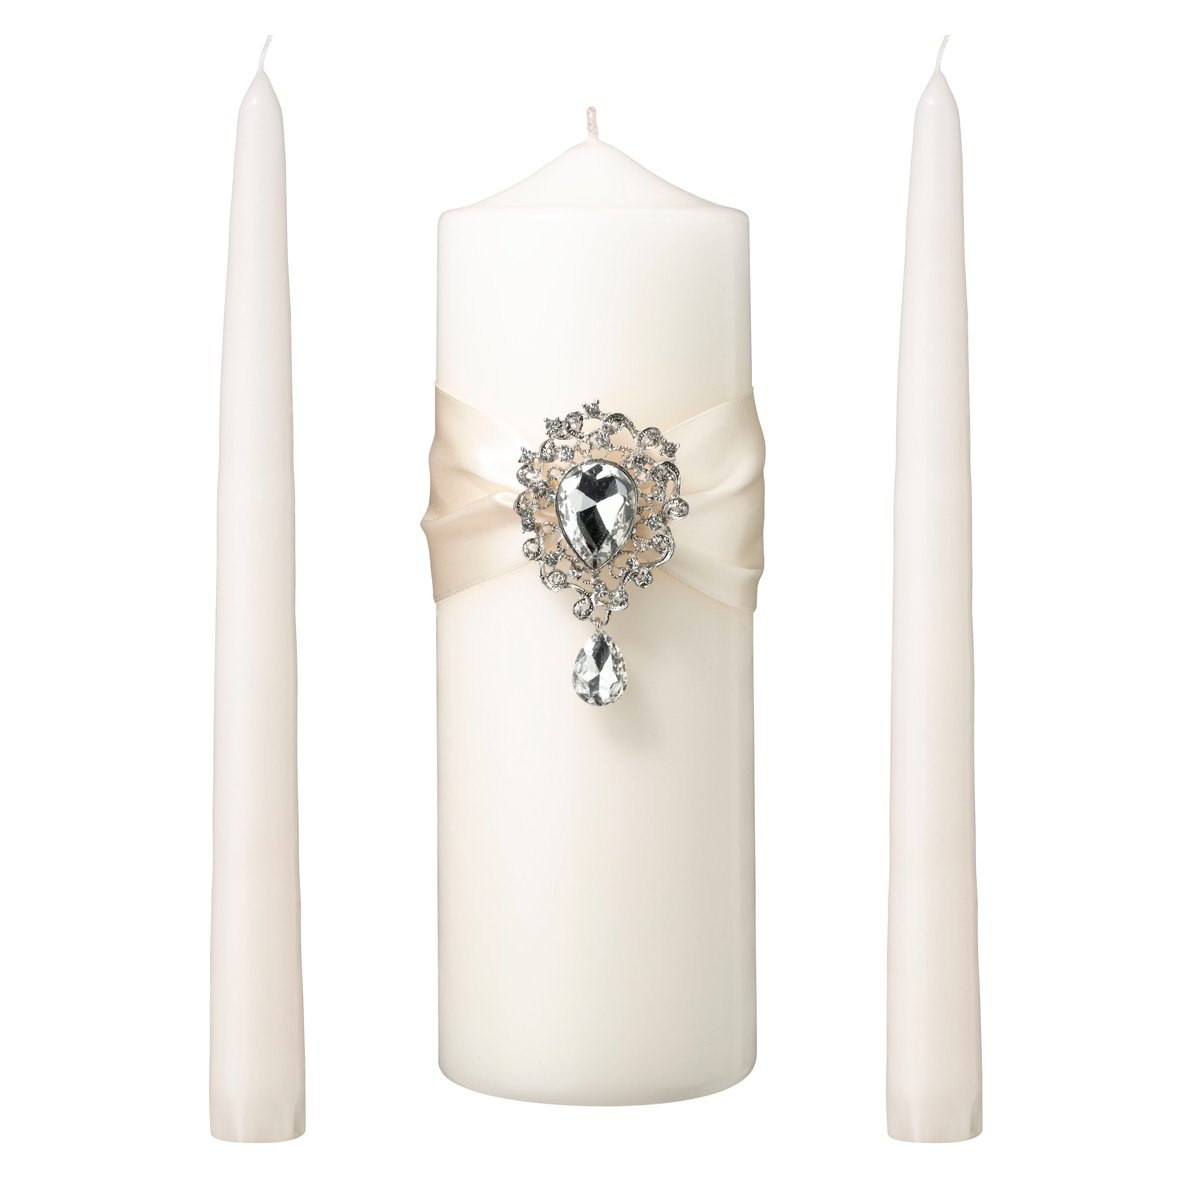 Lillian Rose AZ100001 I Jeweled Unity Candle Wedding Ceremony Set, Ivory